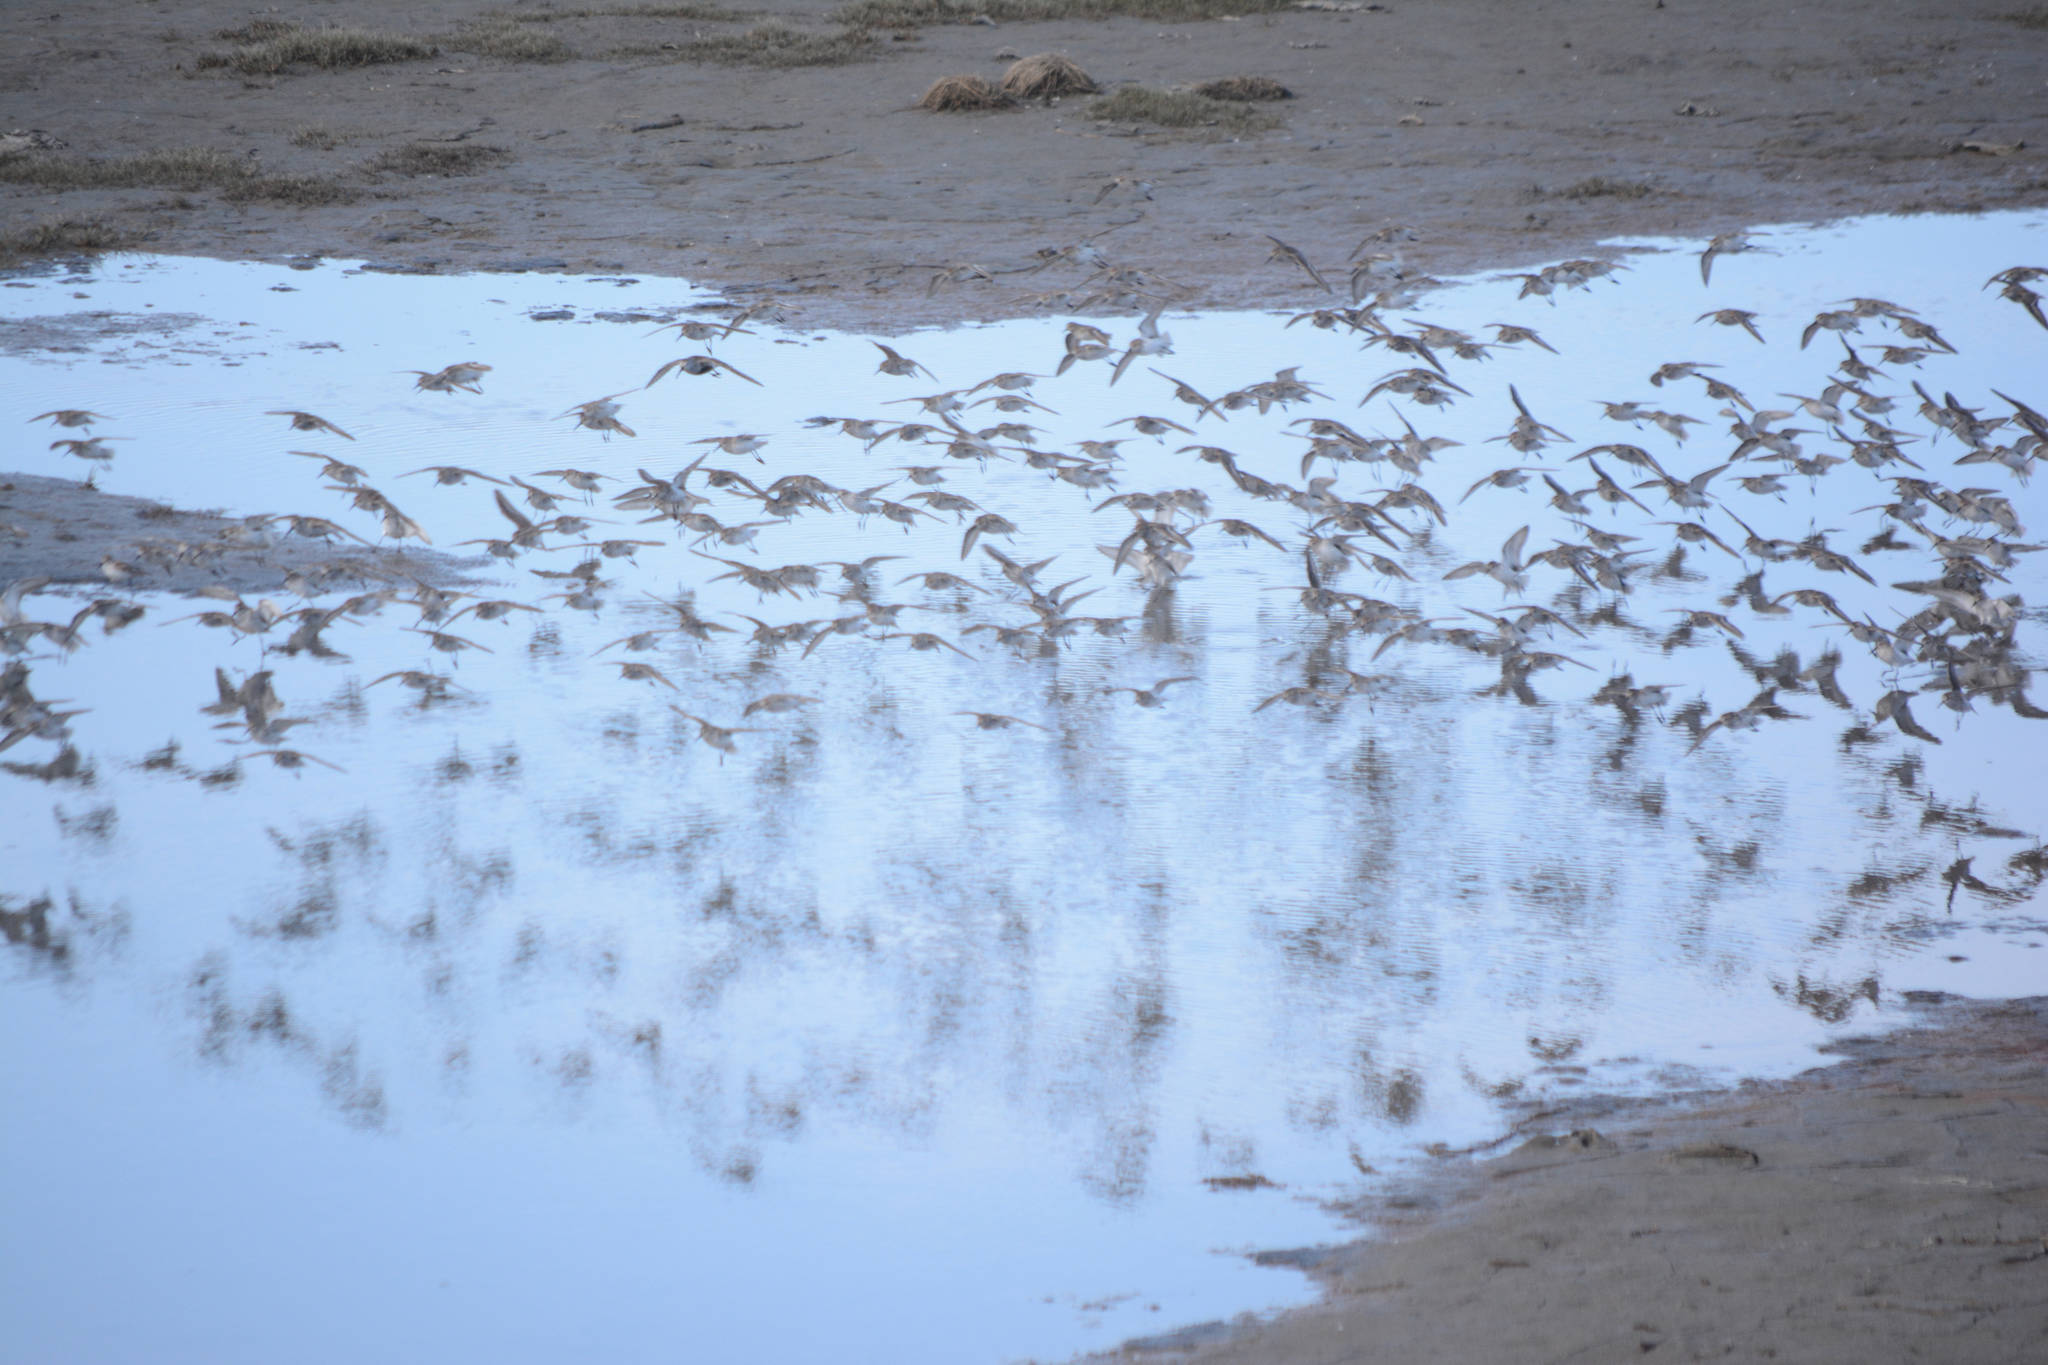 Shorebirds visit right on time